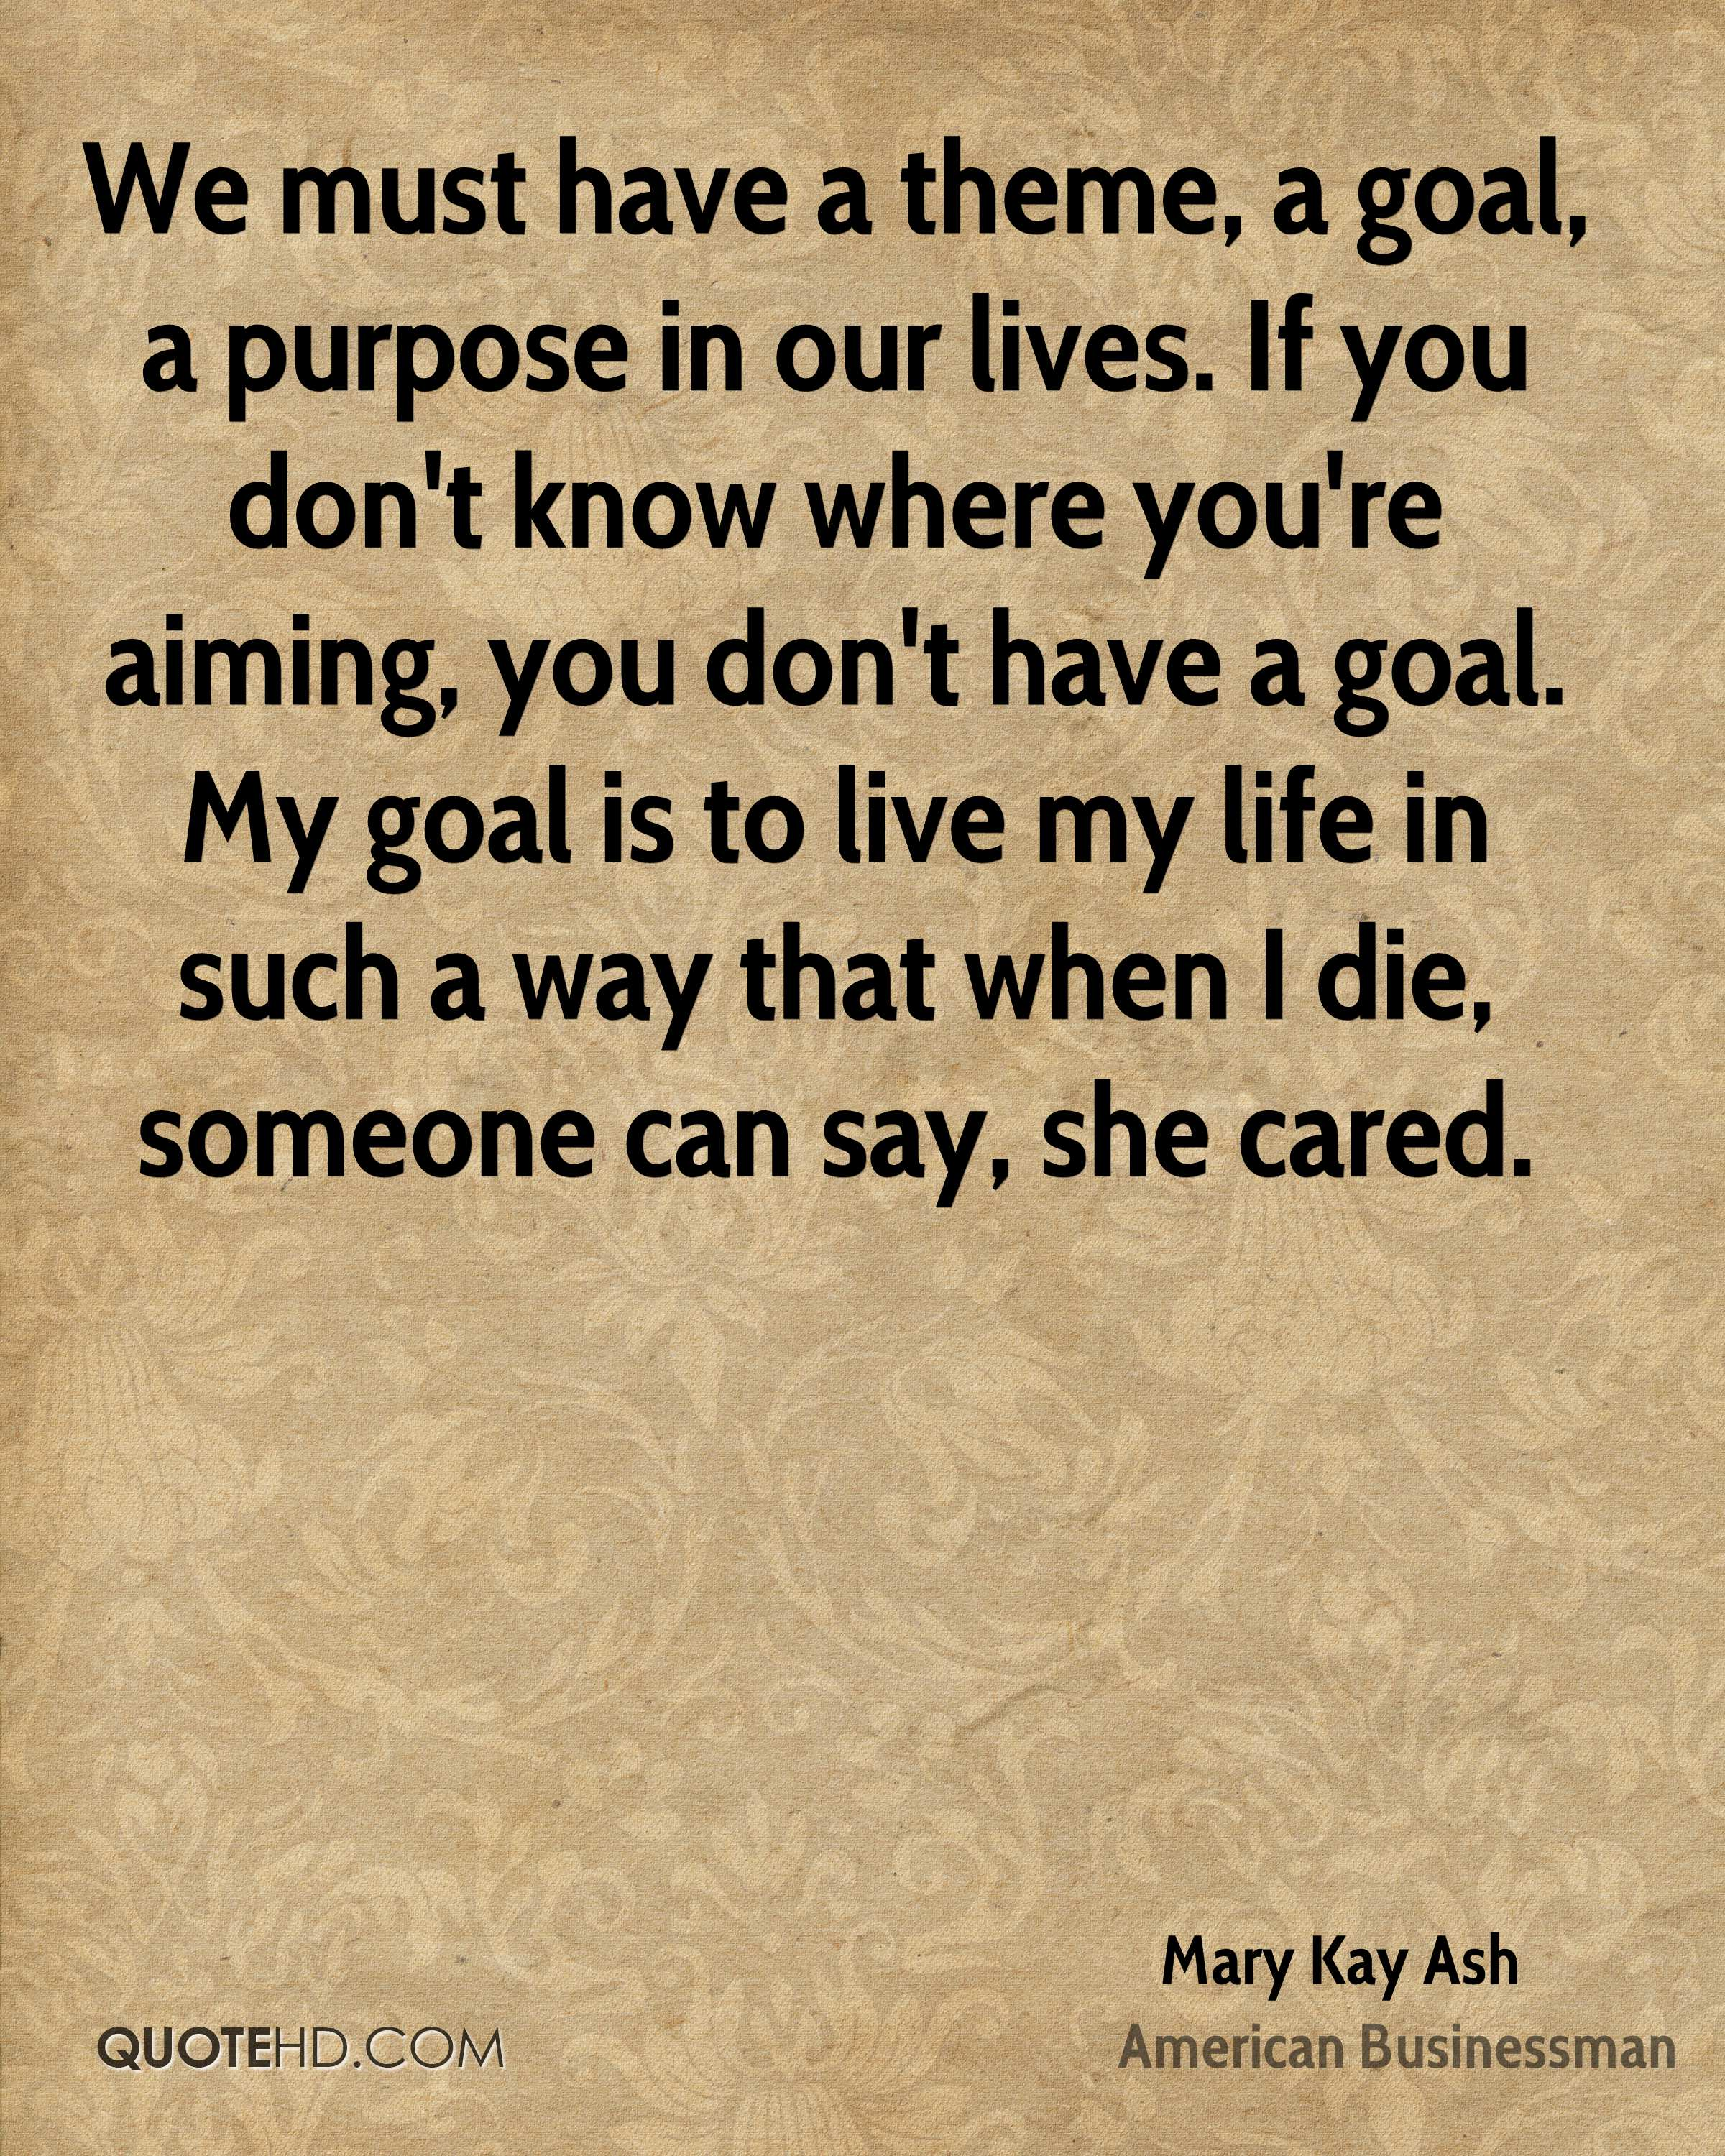 Life Purpose Quotes Mary Kay Ash Life Quotes  Quotehd